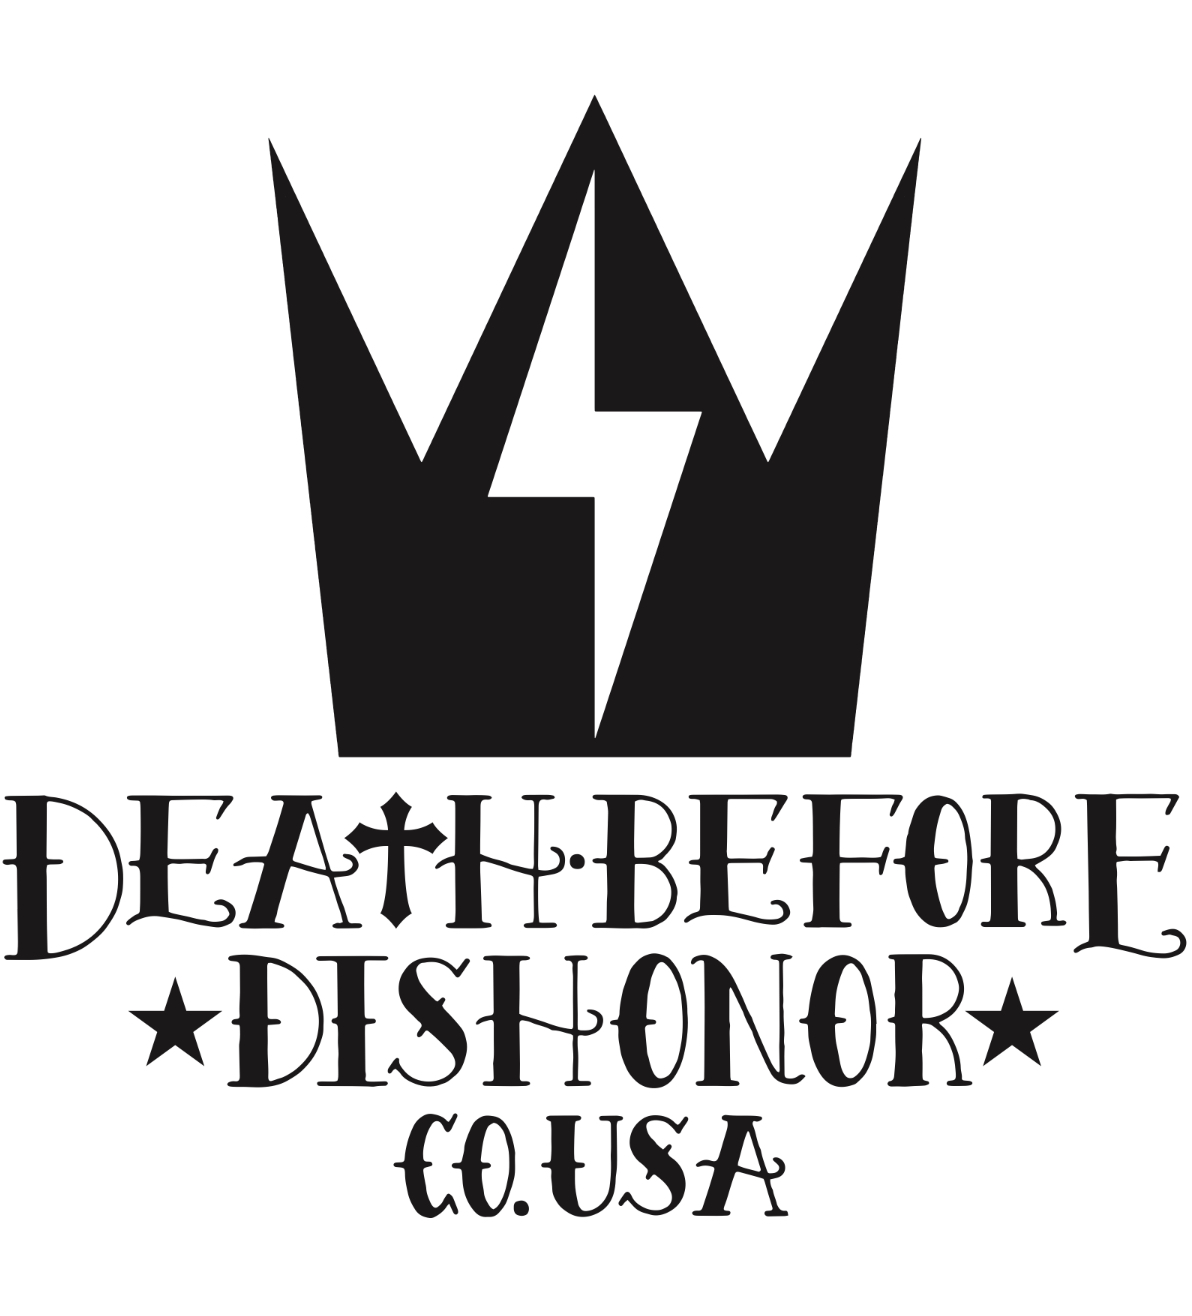 DEATH BEFORE DISHONOR CO. USA